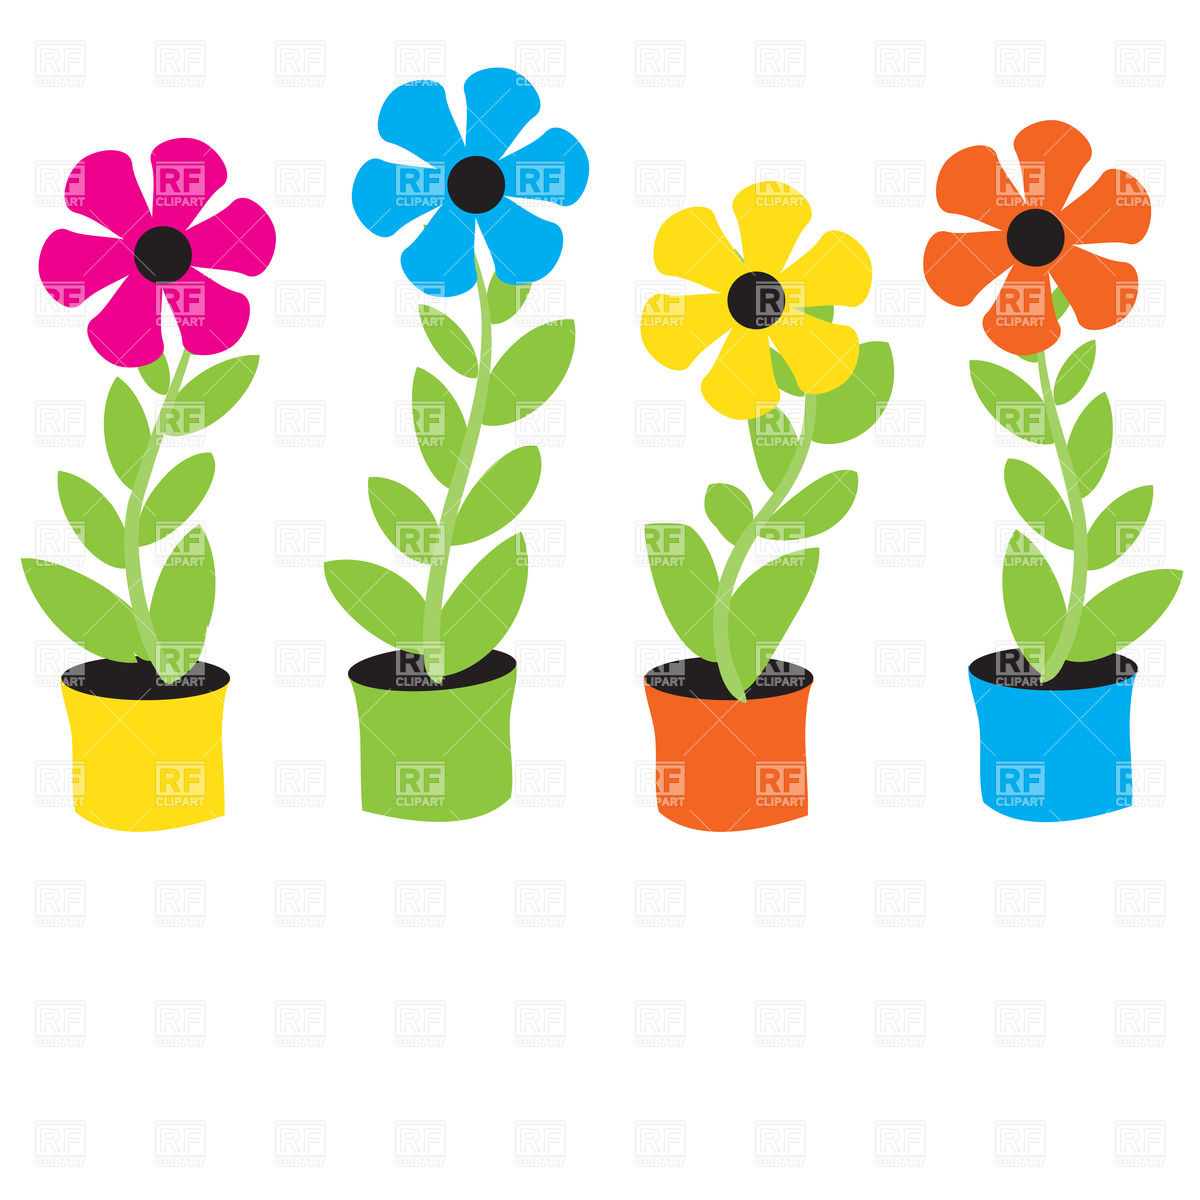 Clipart flower pot free banner free library Flower Pot Clipart   Free download best Flower Pot Clipart on ... banner free library